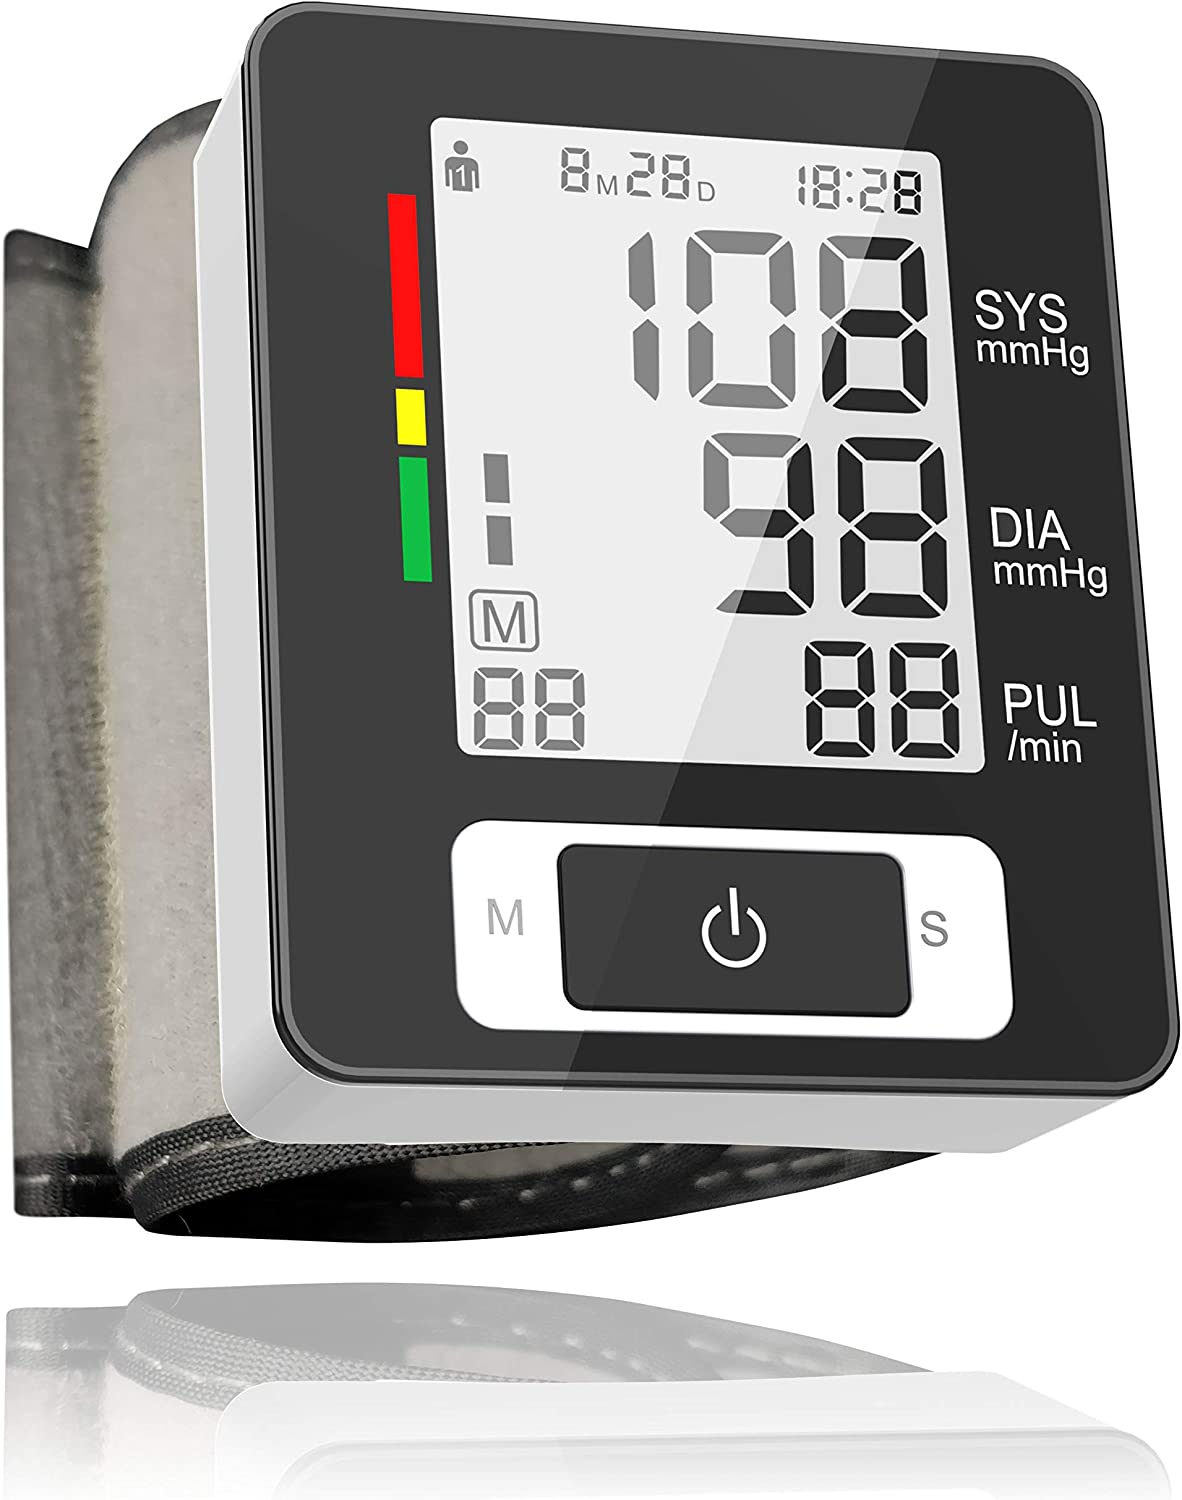 Wrist Blood Pressure Monitor Fully Automatic Digital Blood Pressure Cuff FDA Approved Electric Portable BP Monitor with Large Screen and 90 Accurate Fast Readings Memory Function for 2 Users